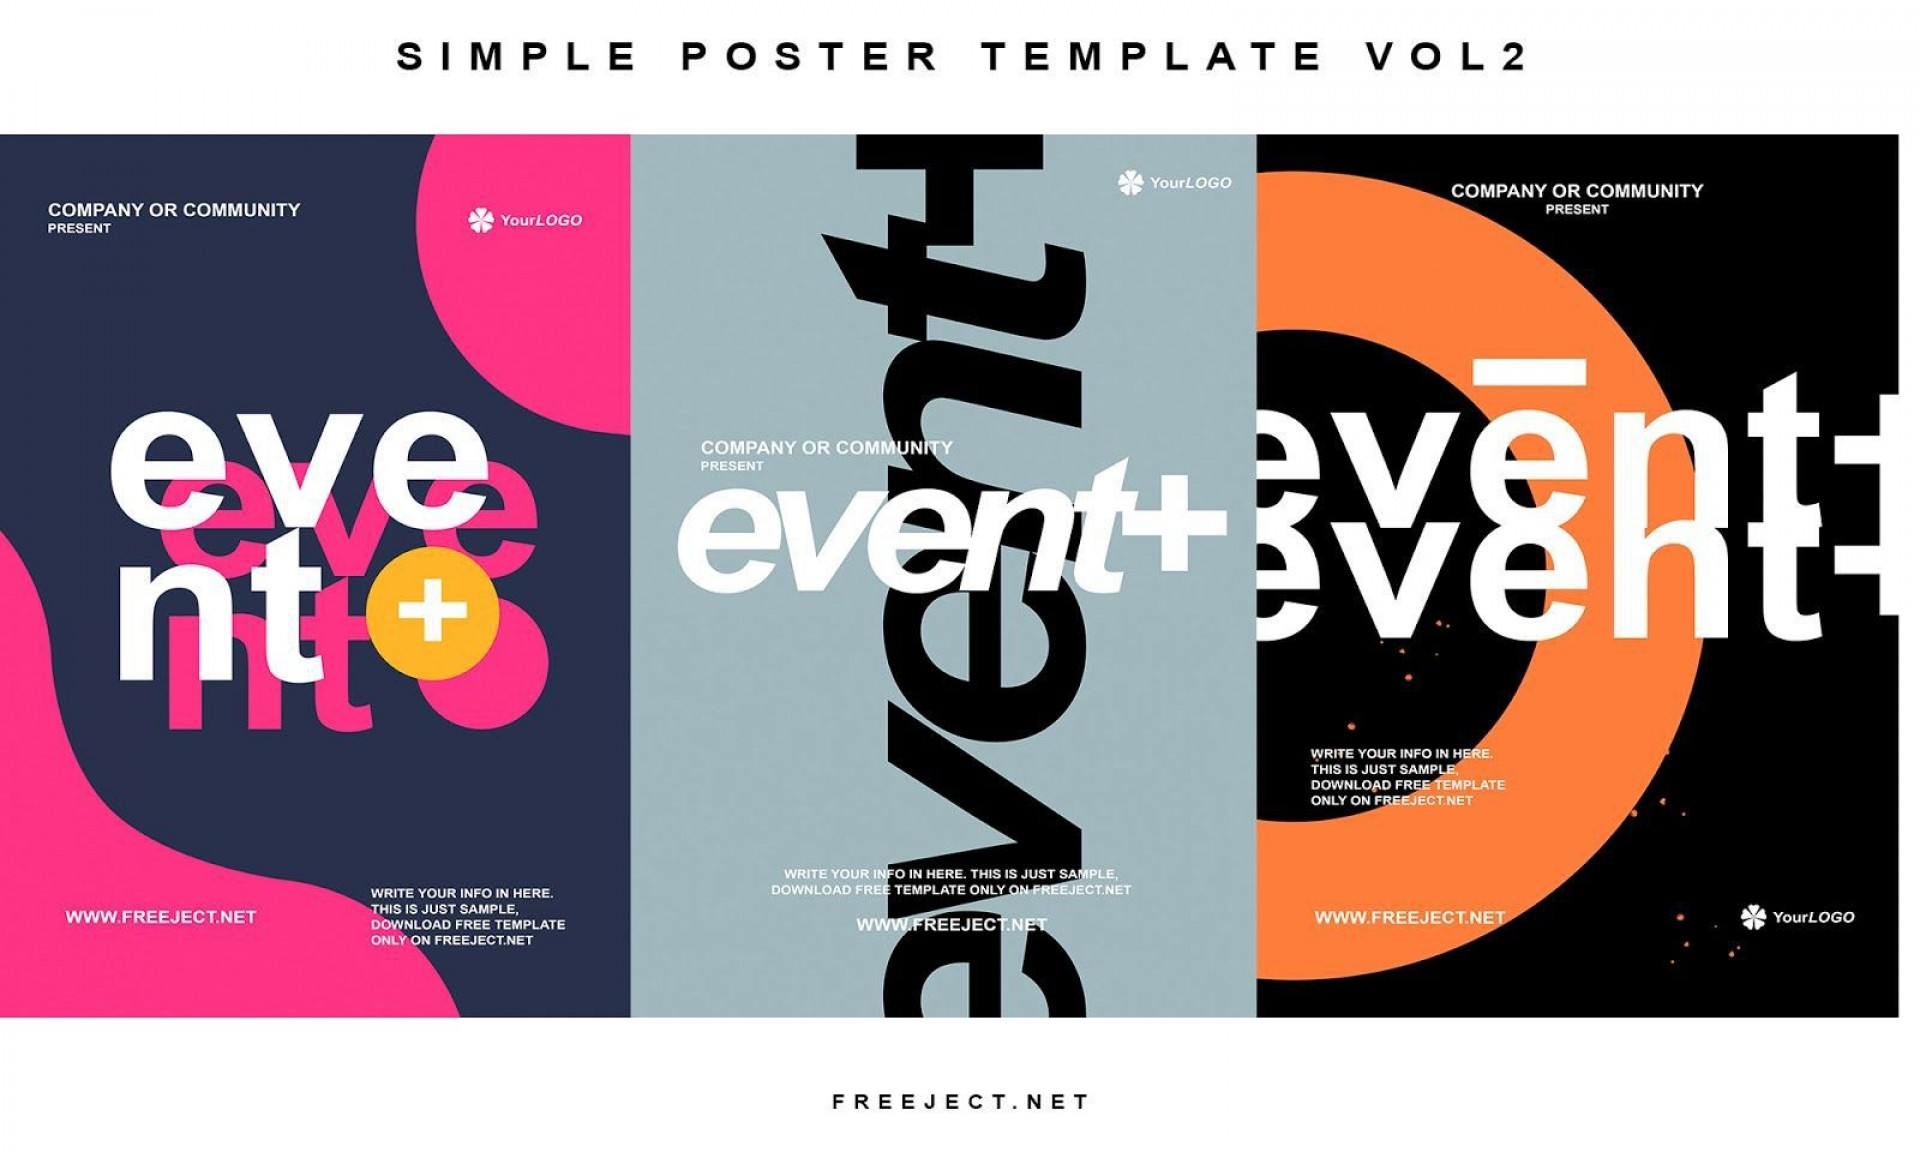 001 Dreaded Free Photoshop Poster Design Template High Resolution 1920